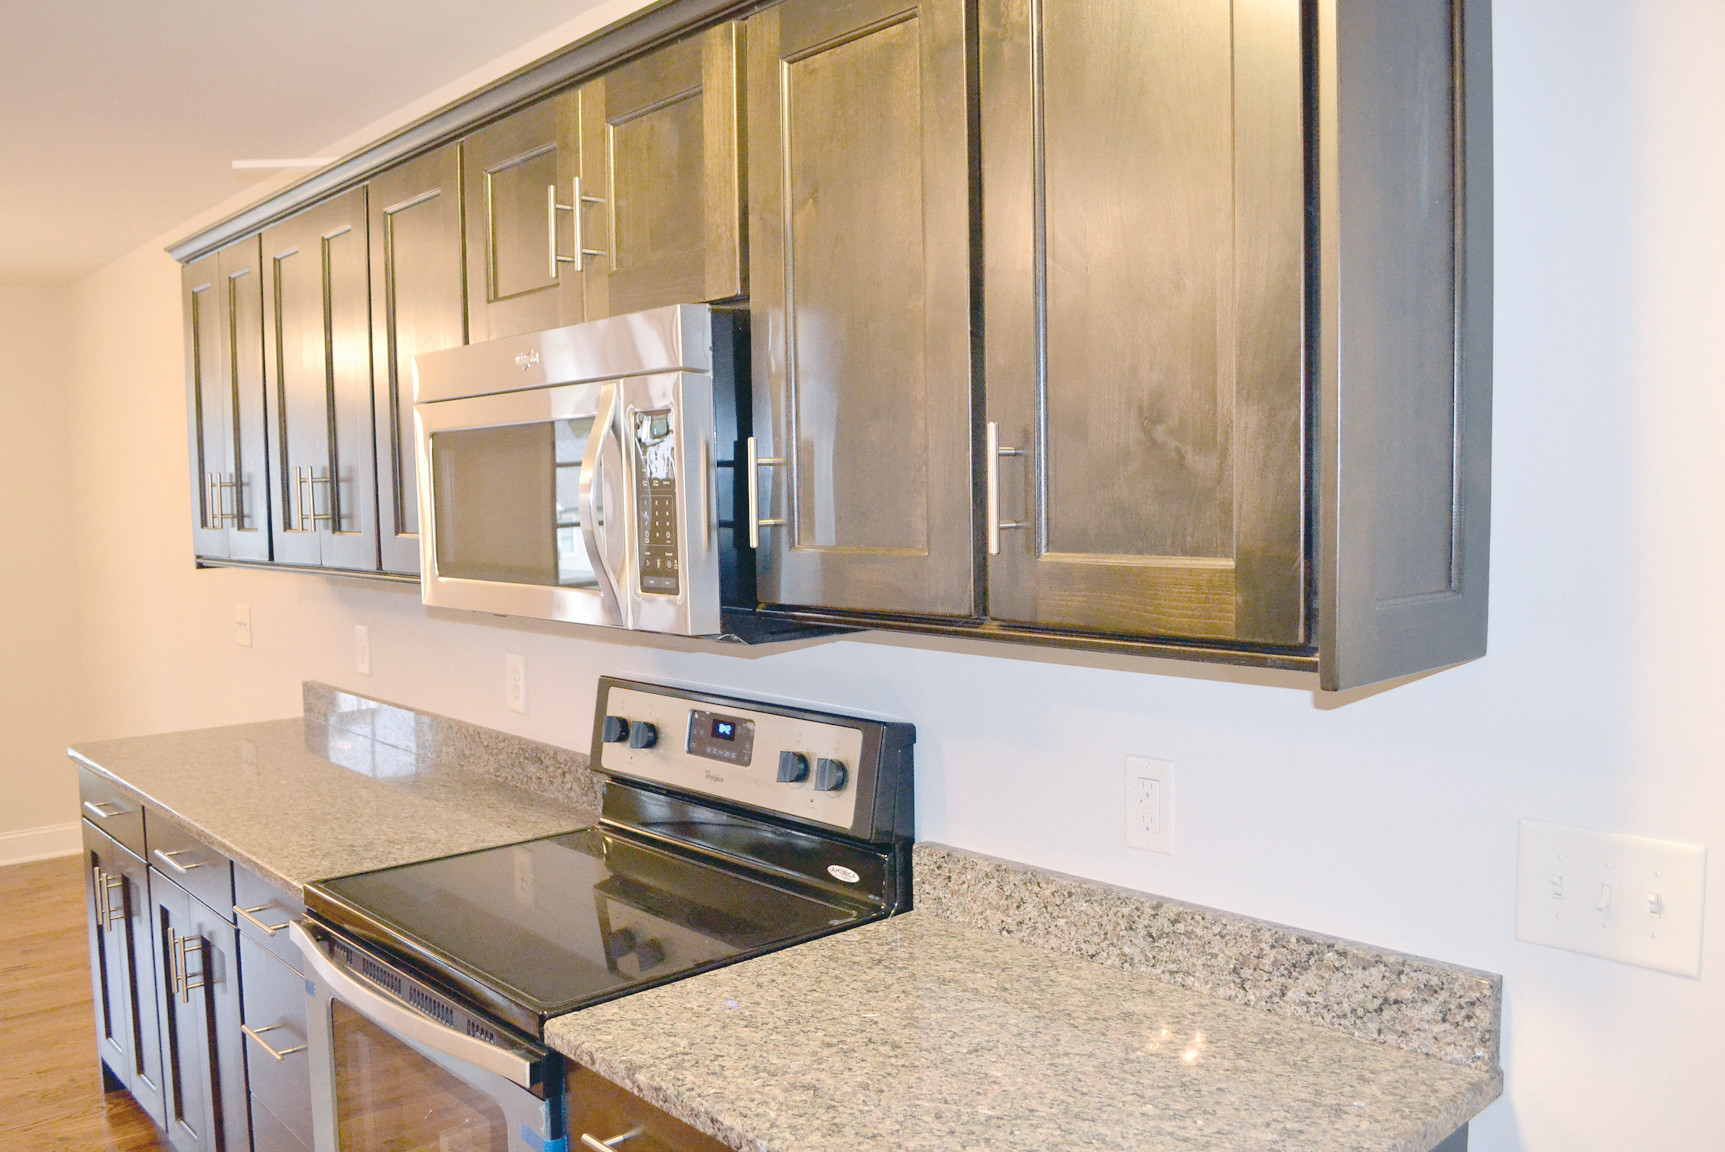 Matching Kitchen Appliances 4 Bedroom 3 Bath Family Home Found In Silver Springs Subdivision